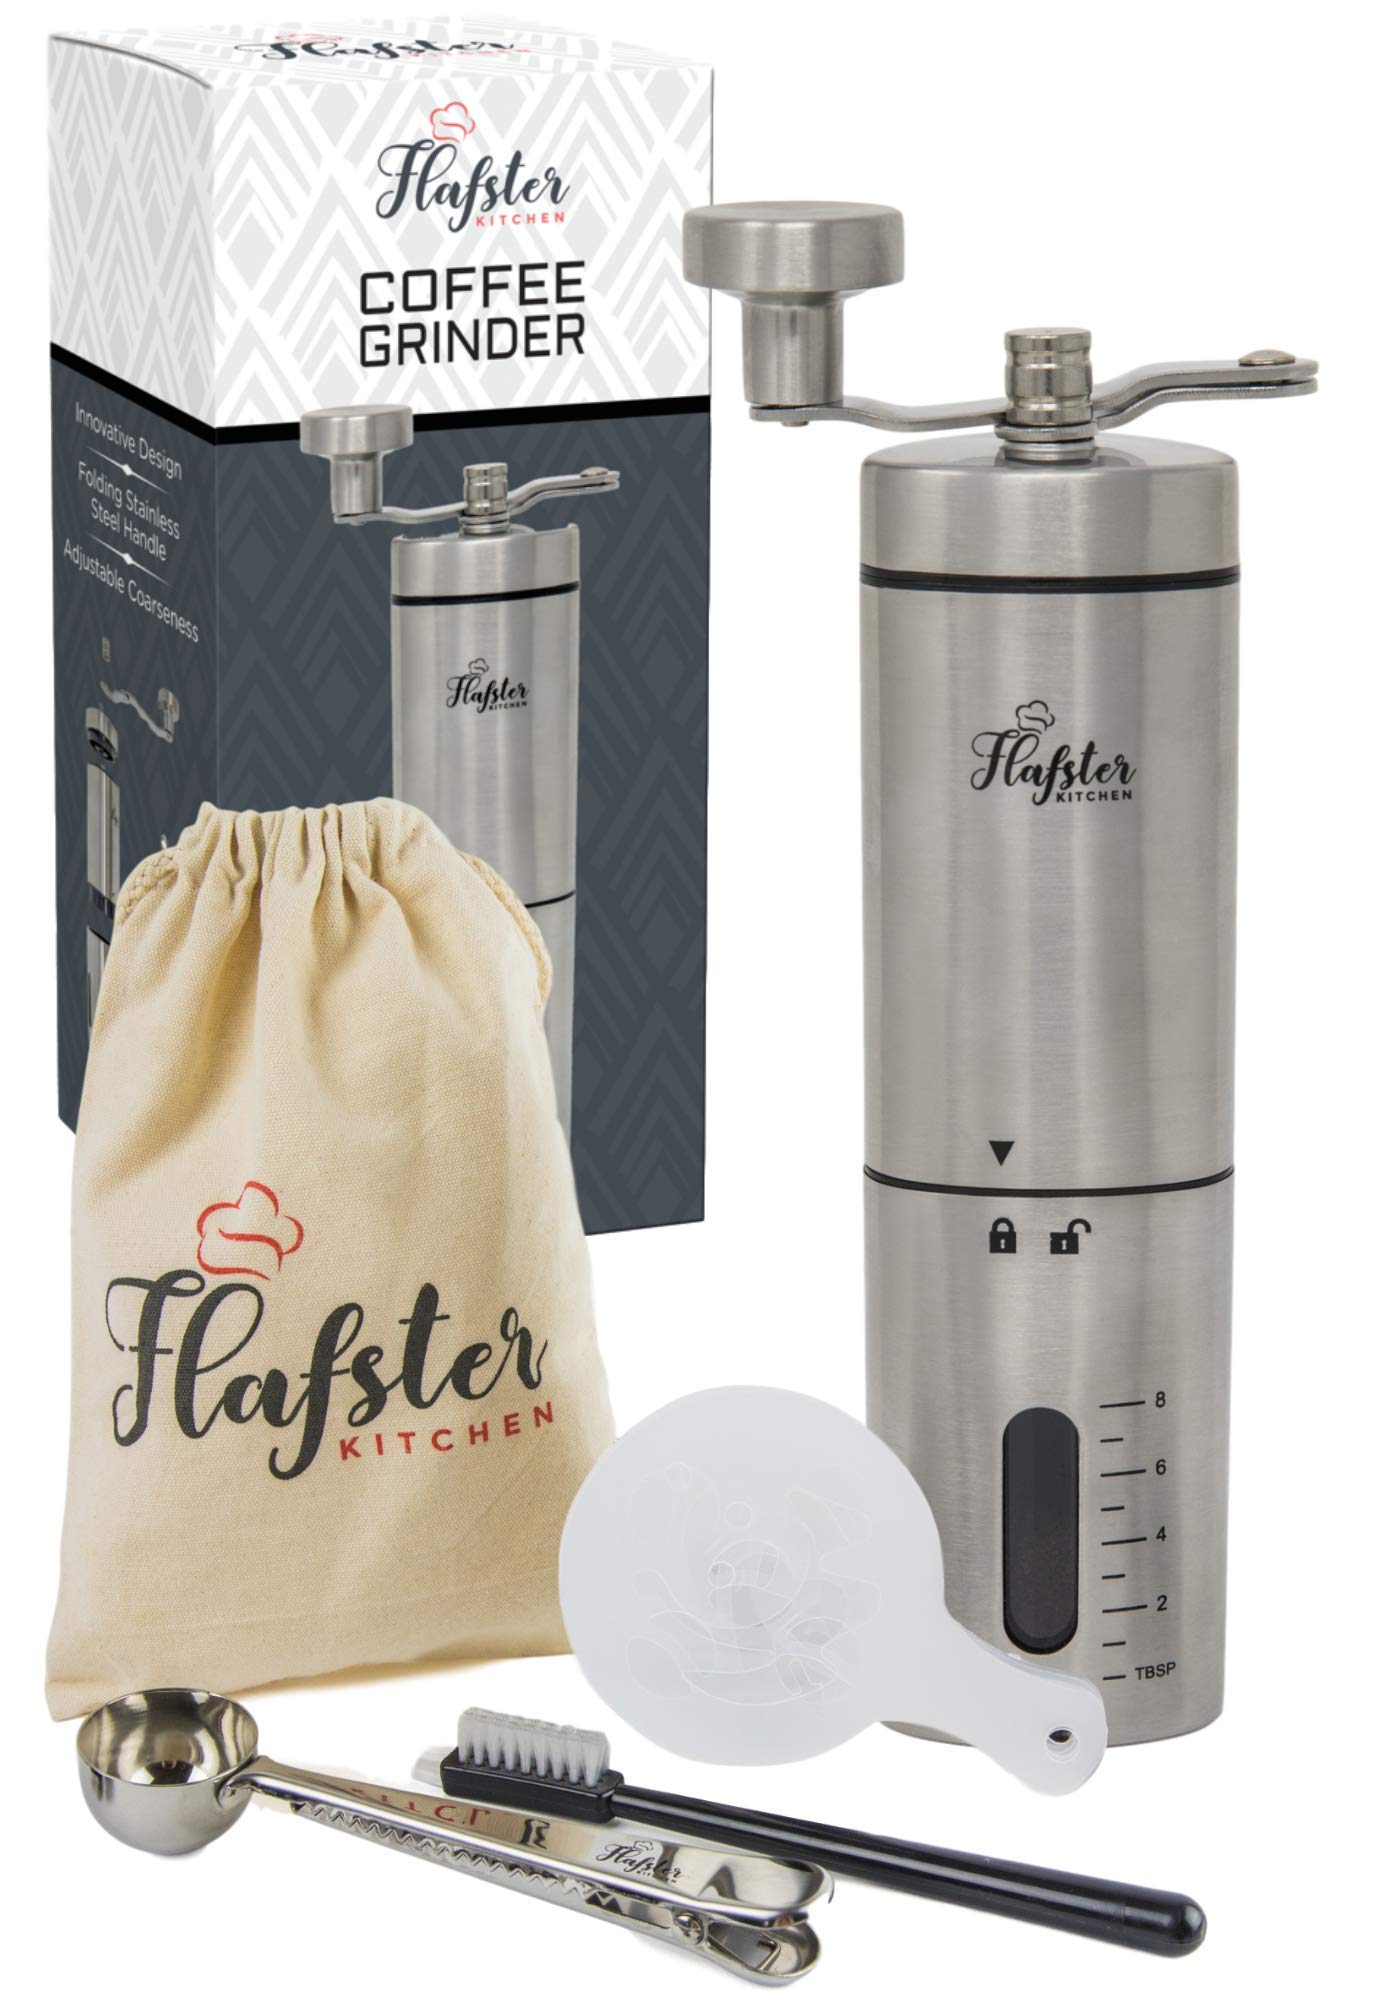 Flafster Kitchen Manual Coffee Grinder- Hand Coffee Bean Grinder With Ceramic Mechanism- Portable Stainless Steel Burr Coffee Mill With Foldable Stainless Steel Handle - Ergonomic Design - Accessories by Flafster Kitchen